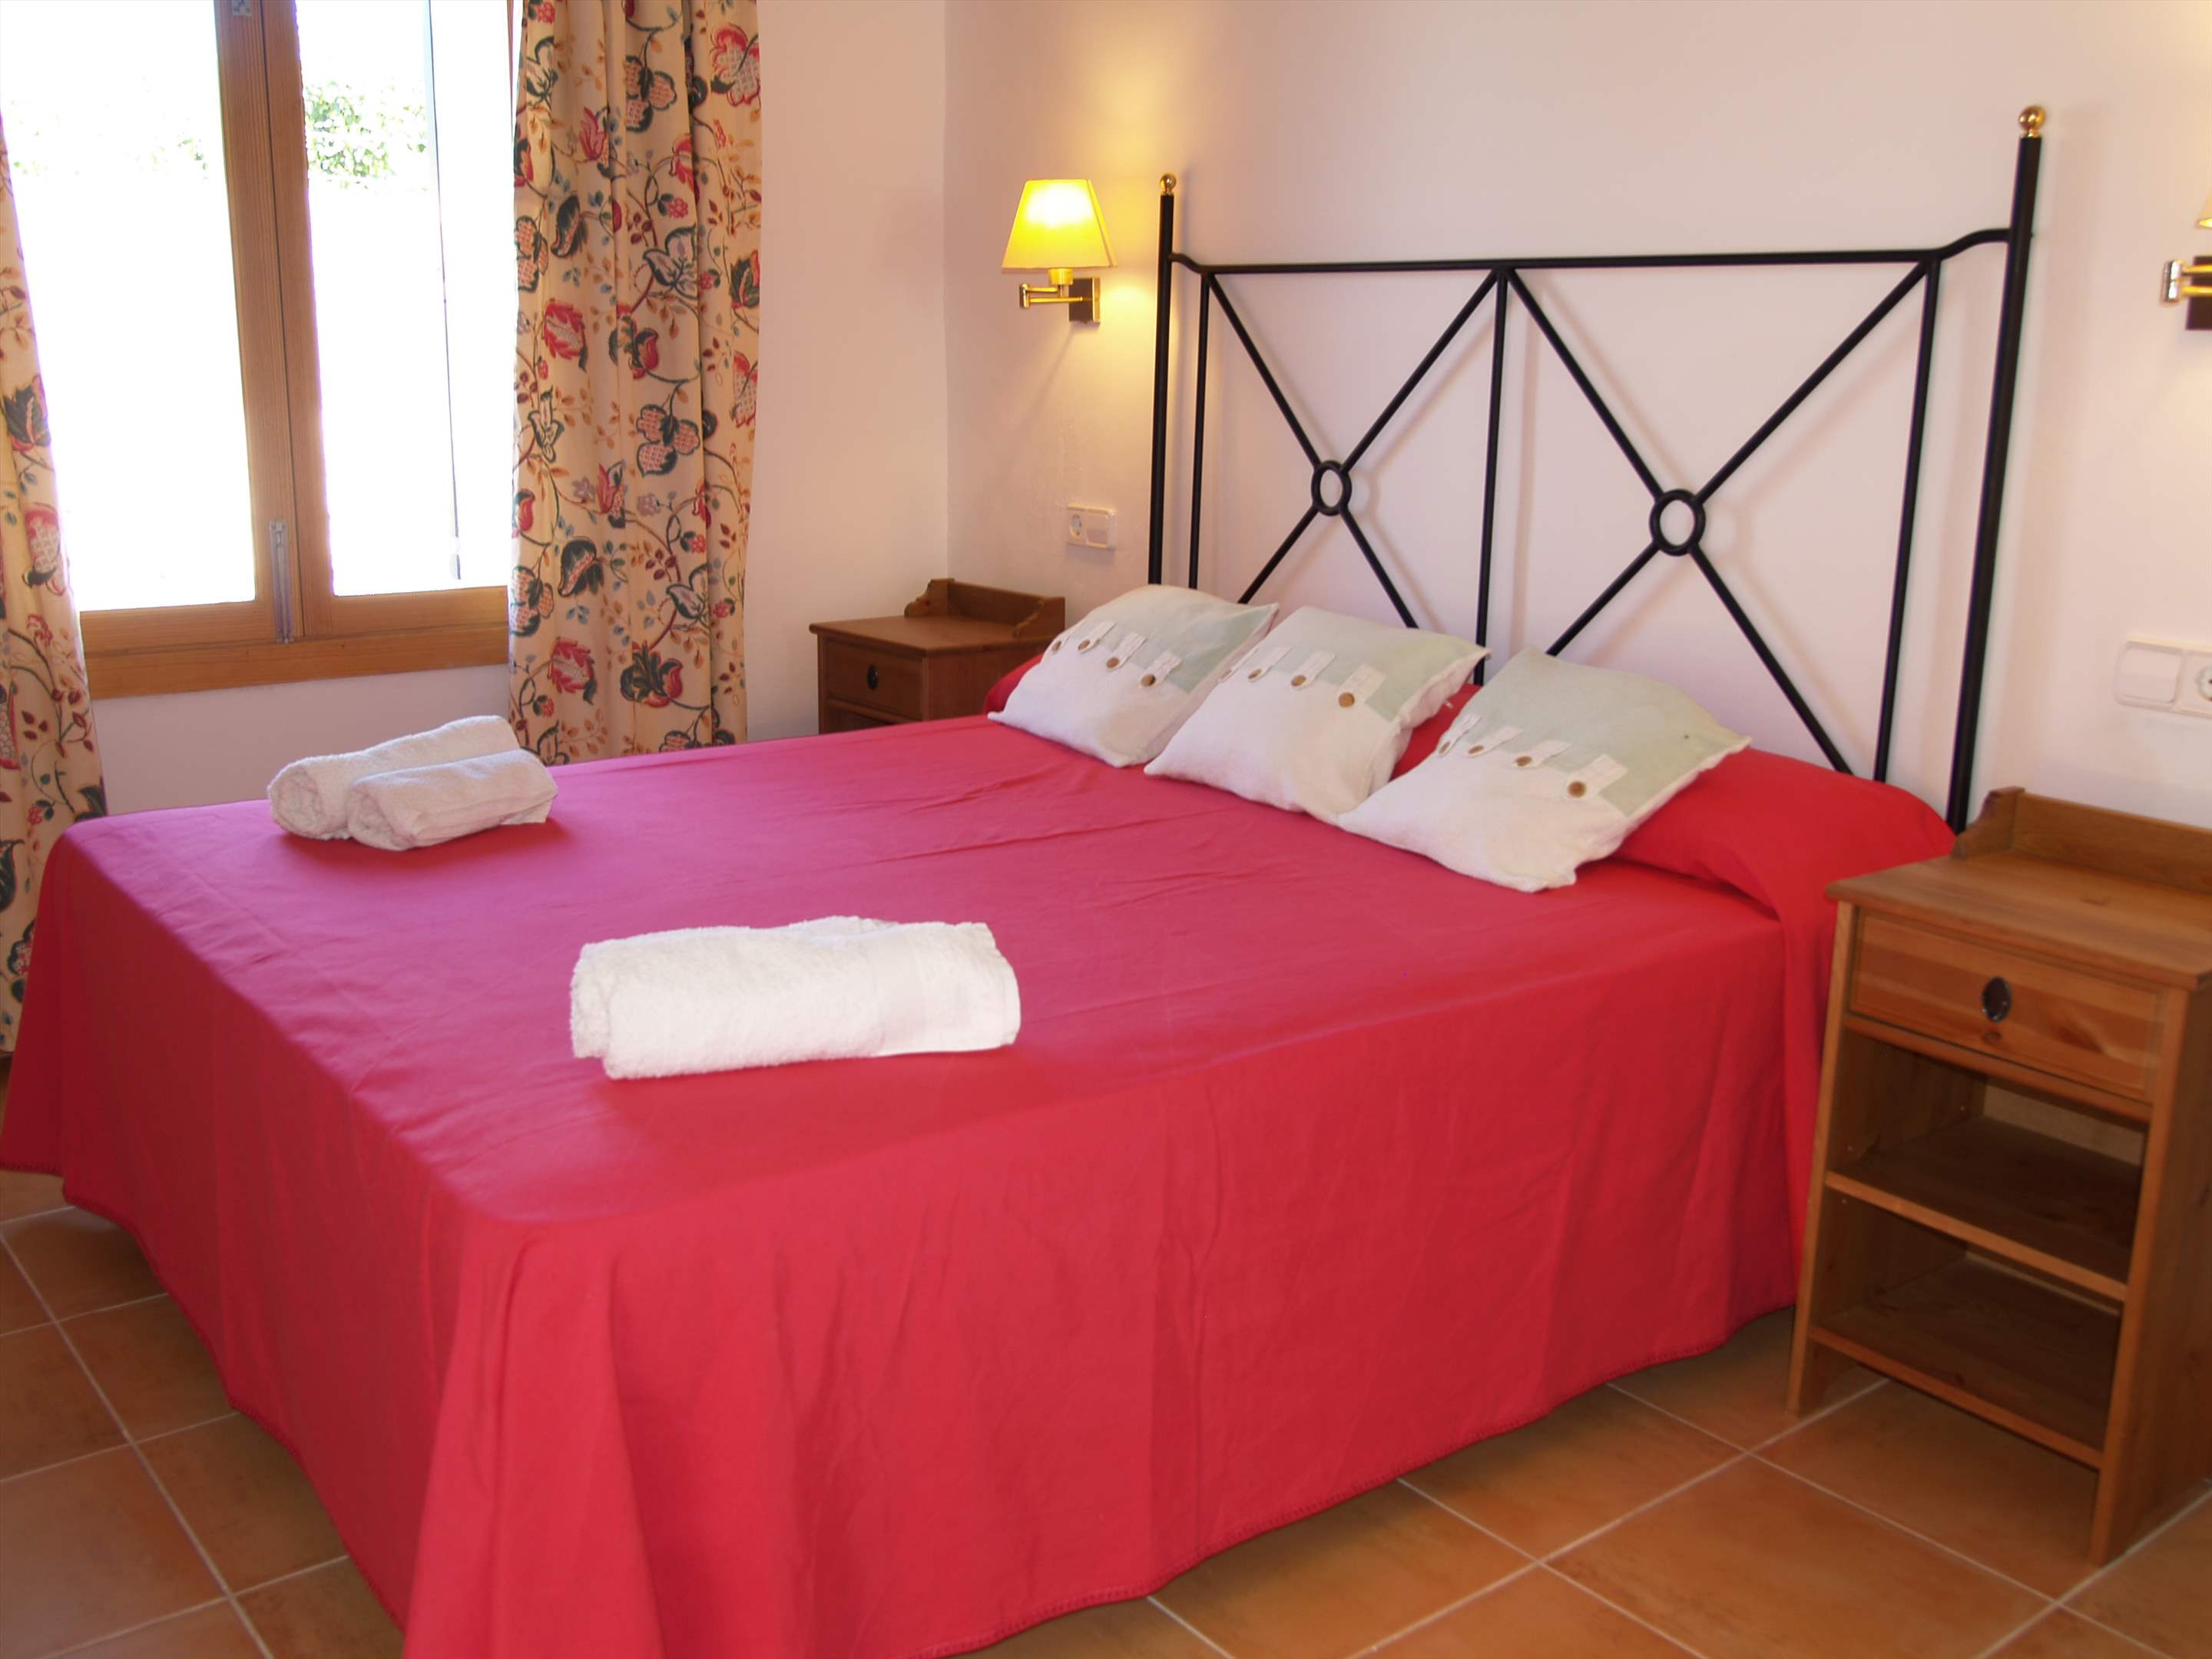 Son Rengo, 3 bedroom villa in Campos & Sa Rapita , Majorca Photo #12